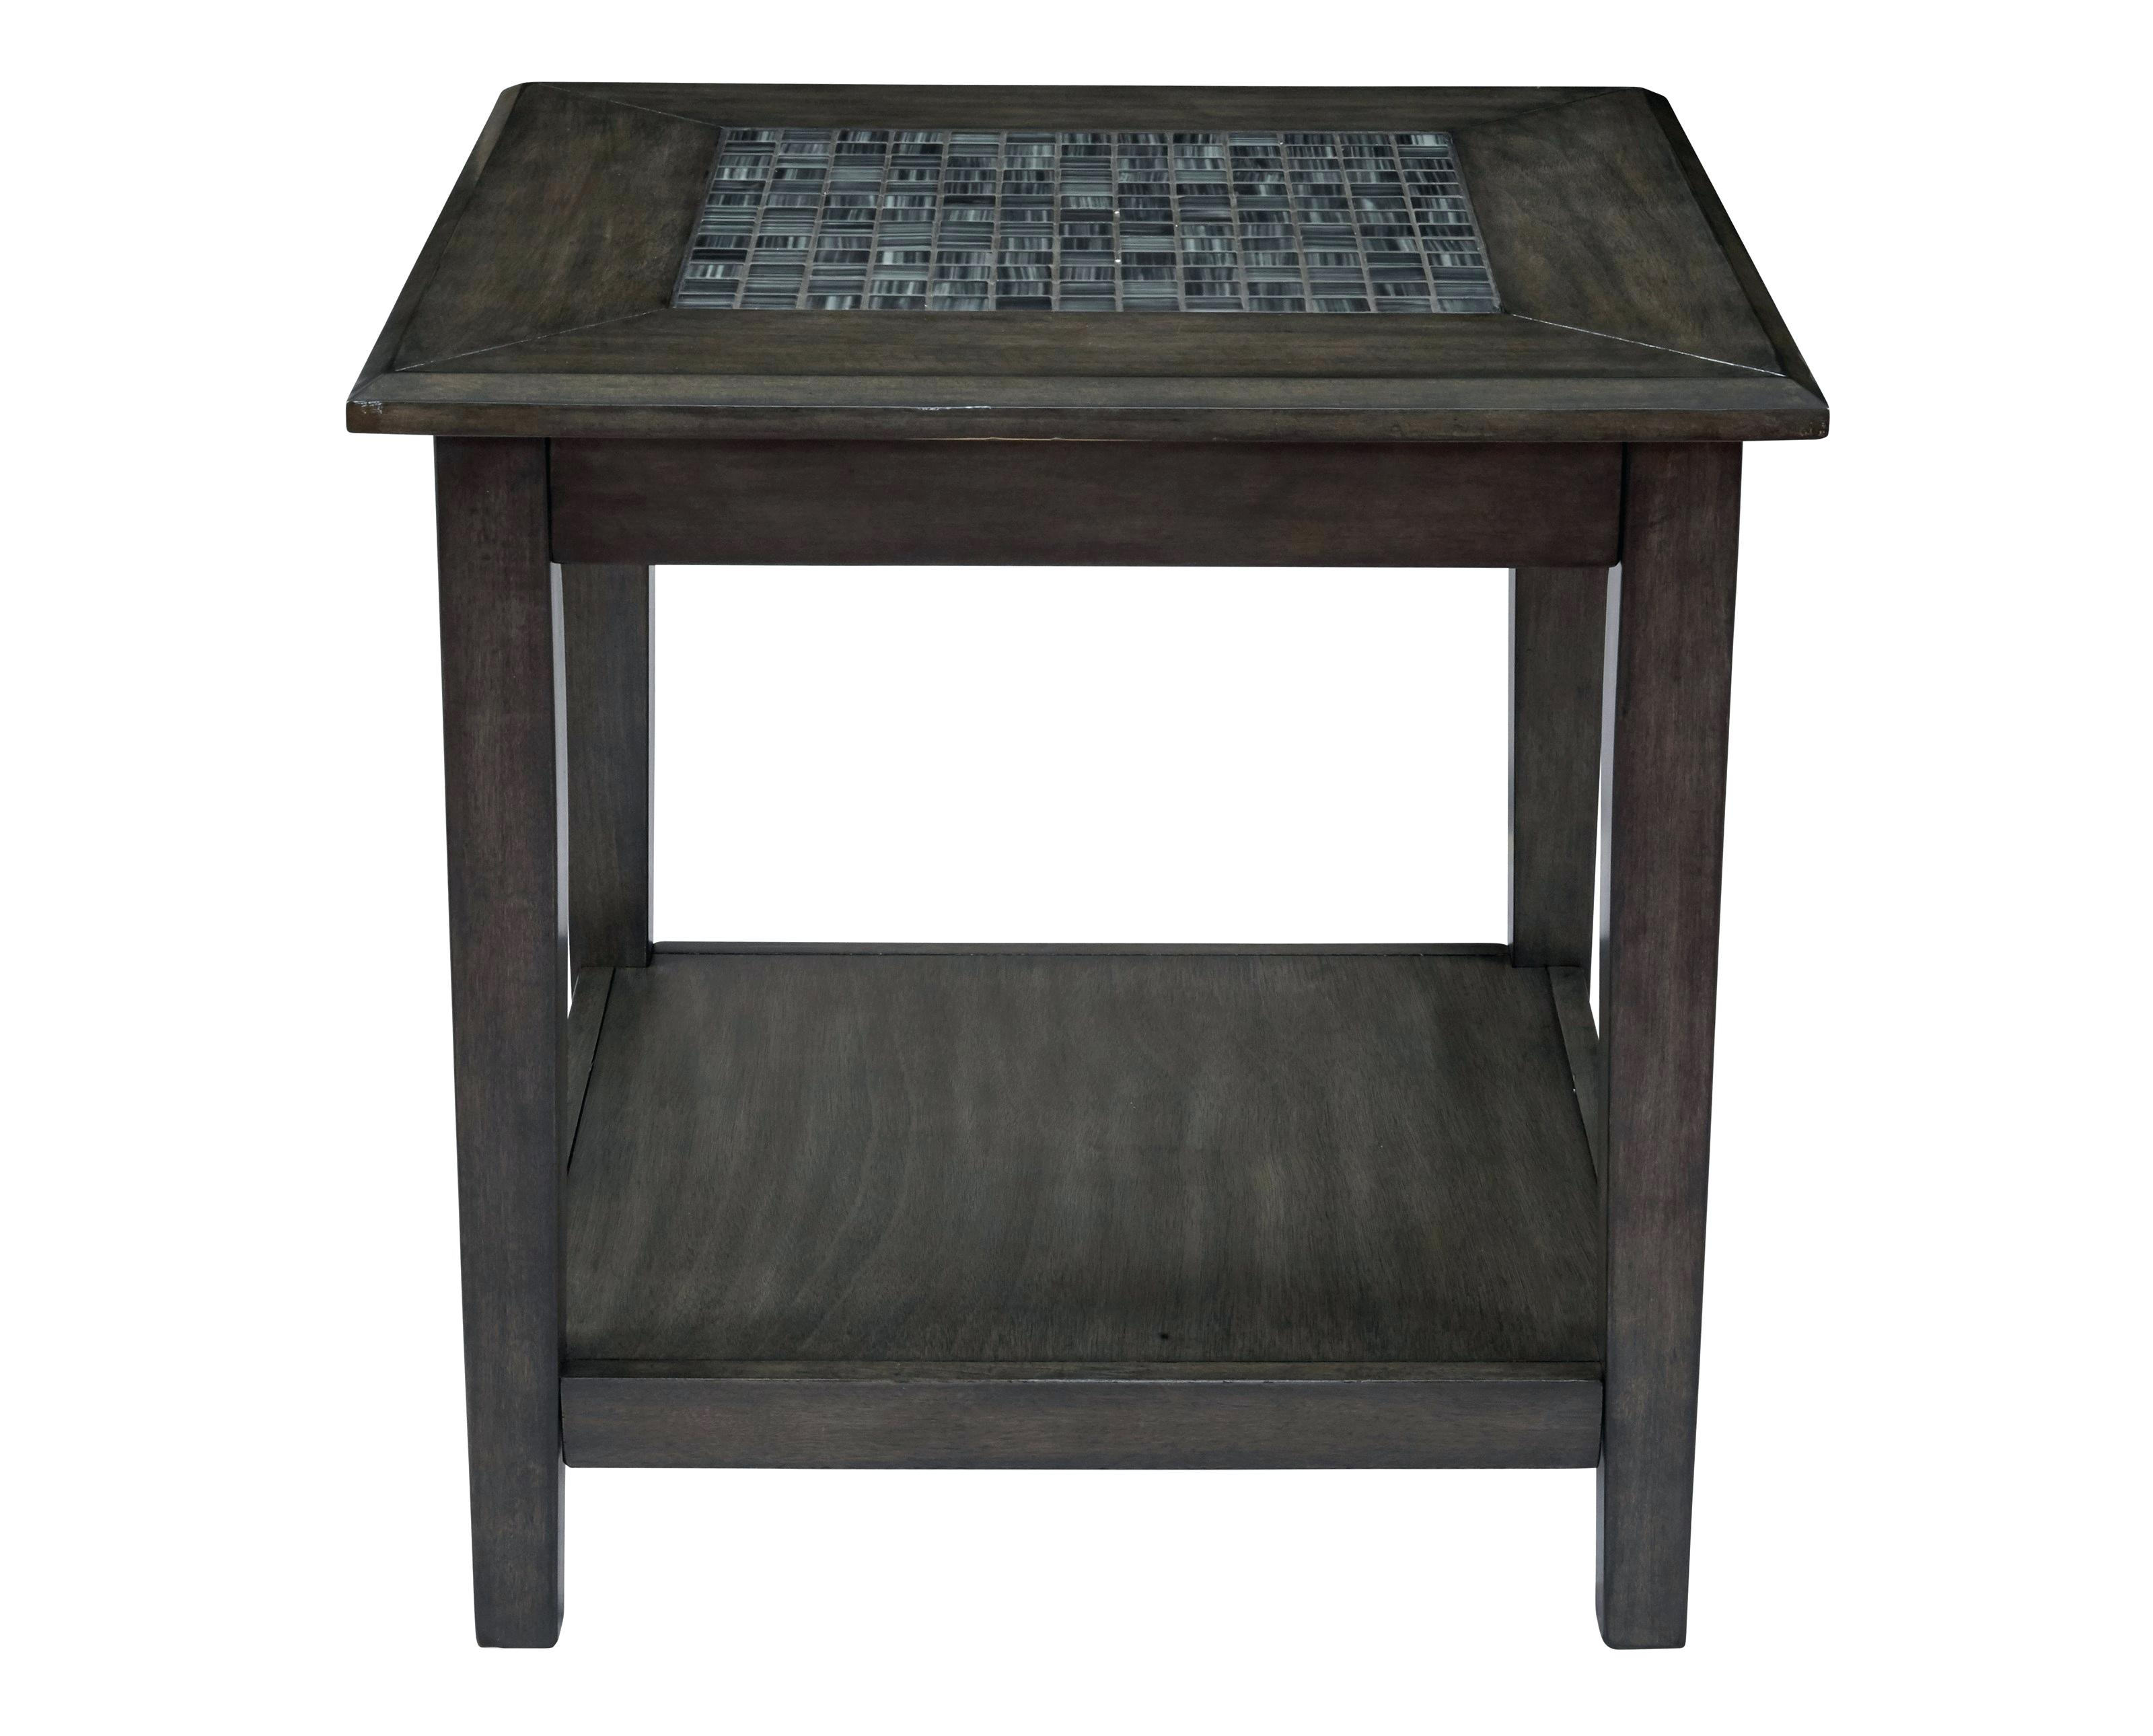 mosaic end table small round accent tables tile grey glass diy square designs outdoor marvelous vinyl covers pottery barn top coffee gold west elm morten lamp storage bench with